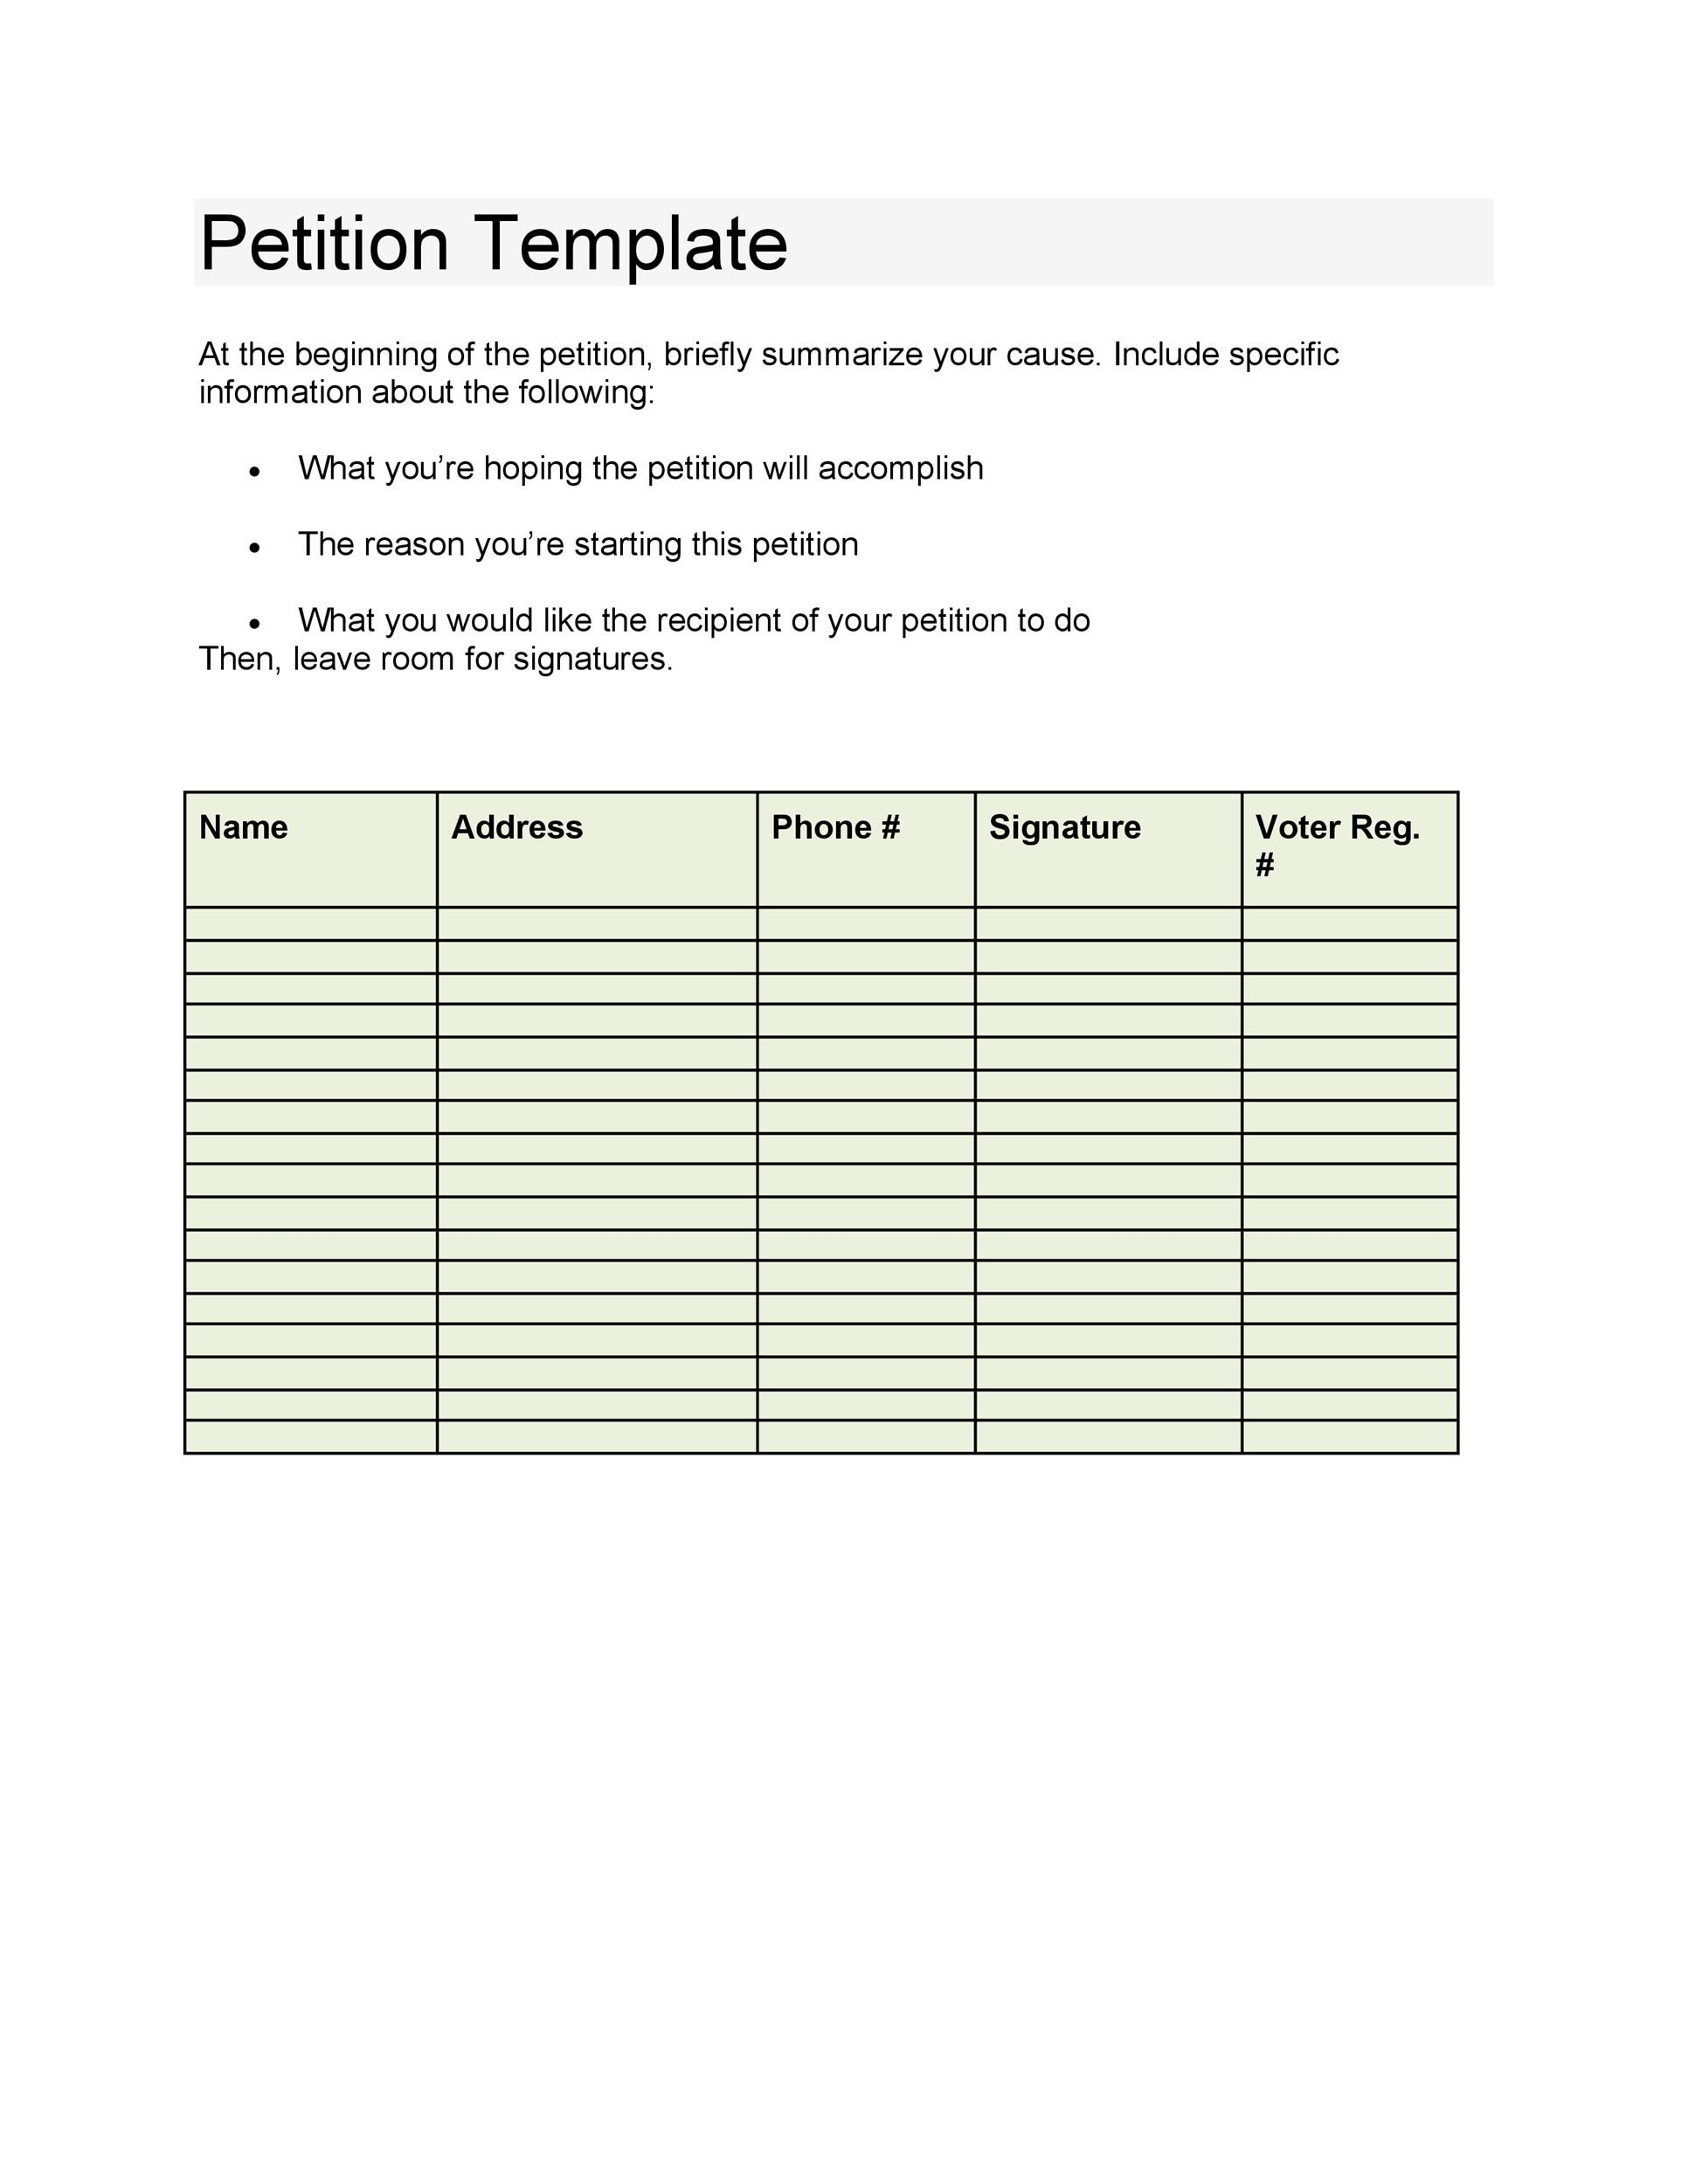 30 Petition Templates + How To Write Petition Guide - how to research your cause for writing the petition